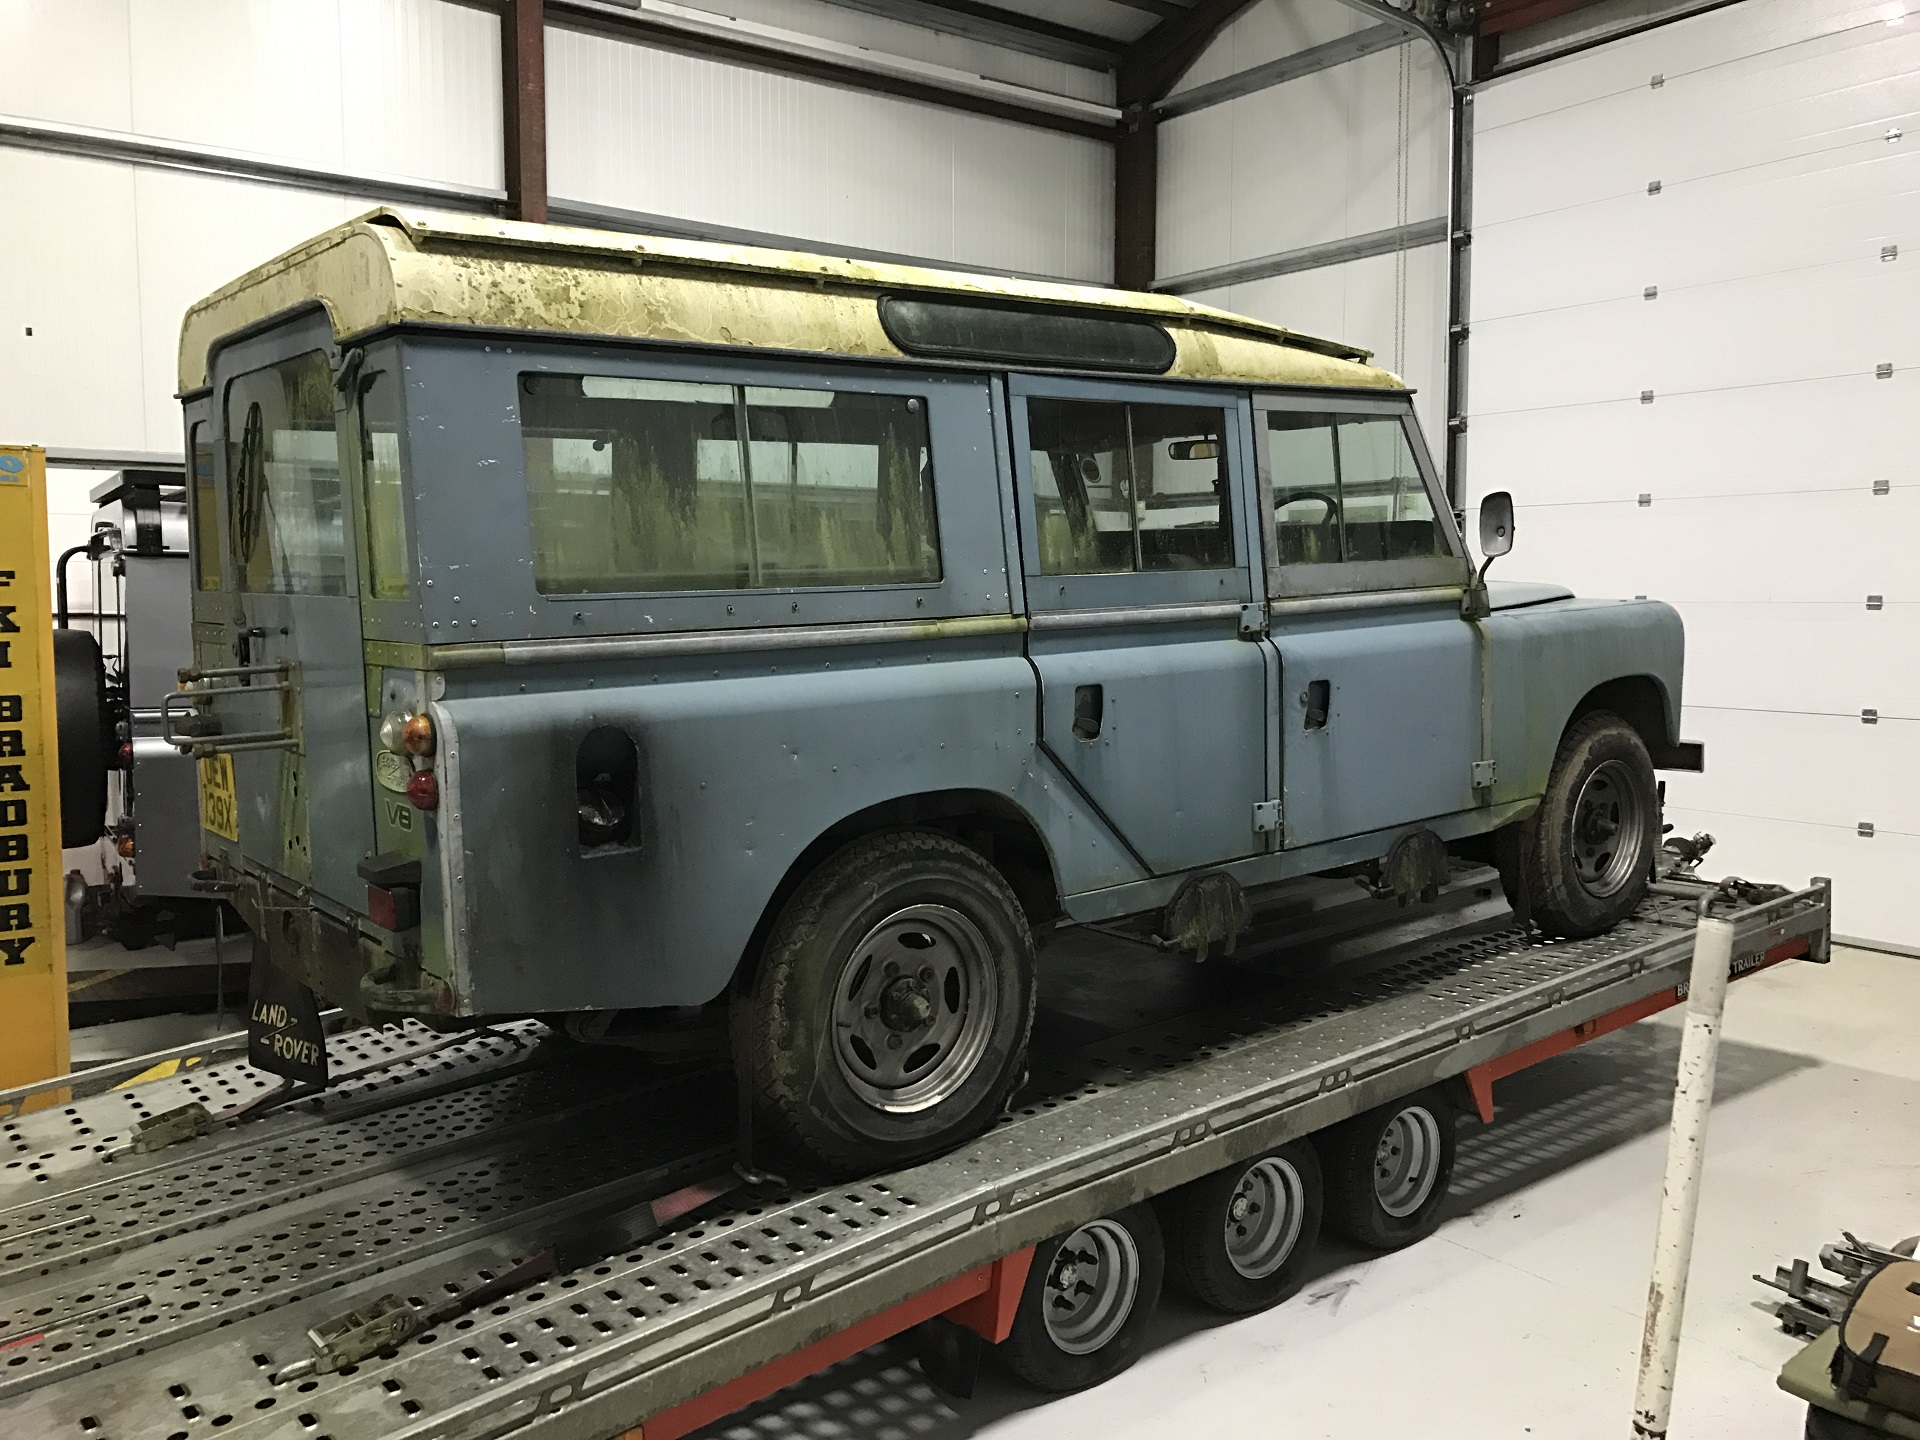 Land Rover Stage 1 V8 Station Wagon 1980 - Future Land Rover Restorations - ACH Classic